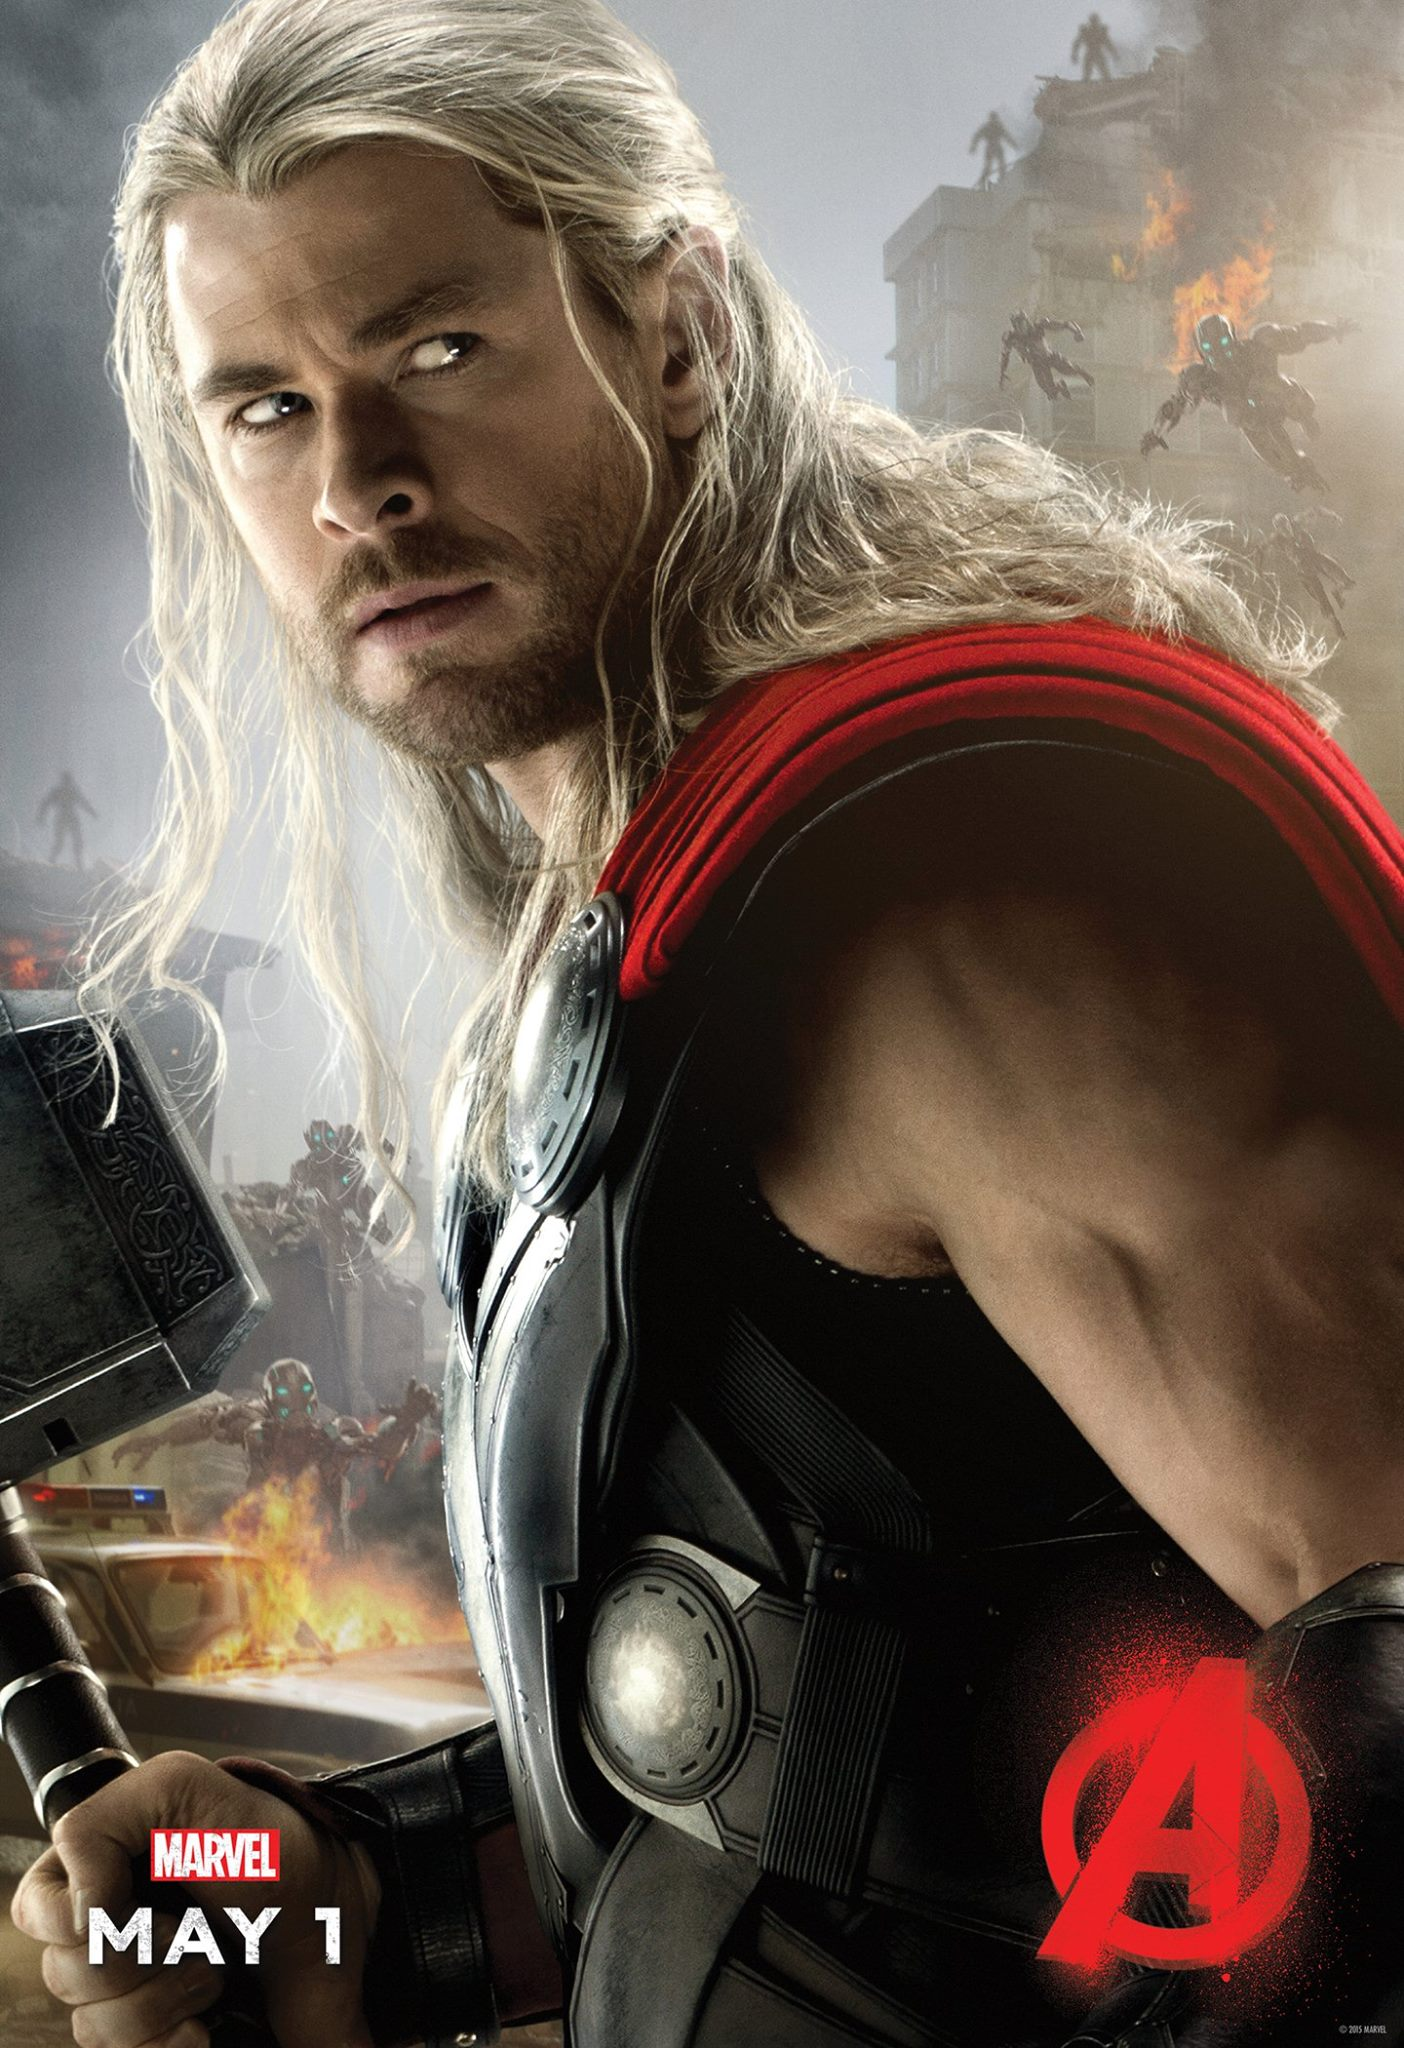 The Avengers Age of Ultron Thor Avengers Age of Ultron Poster